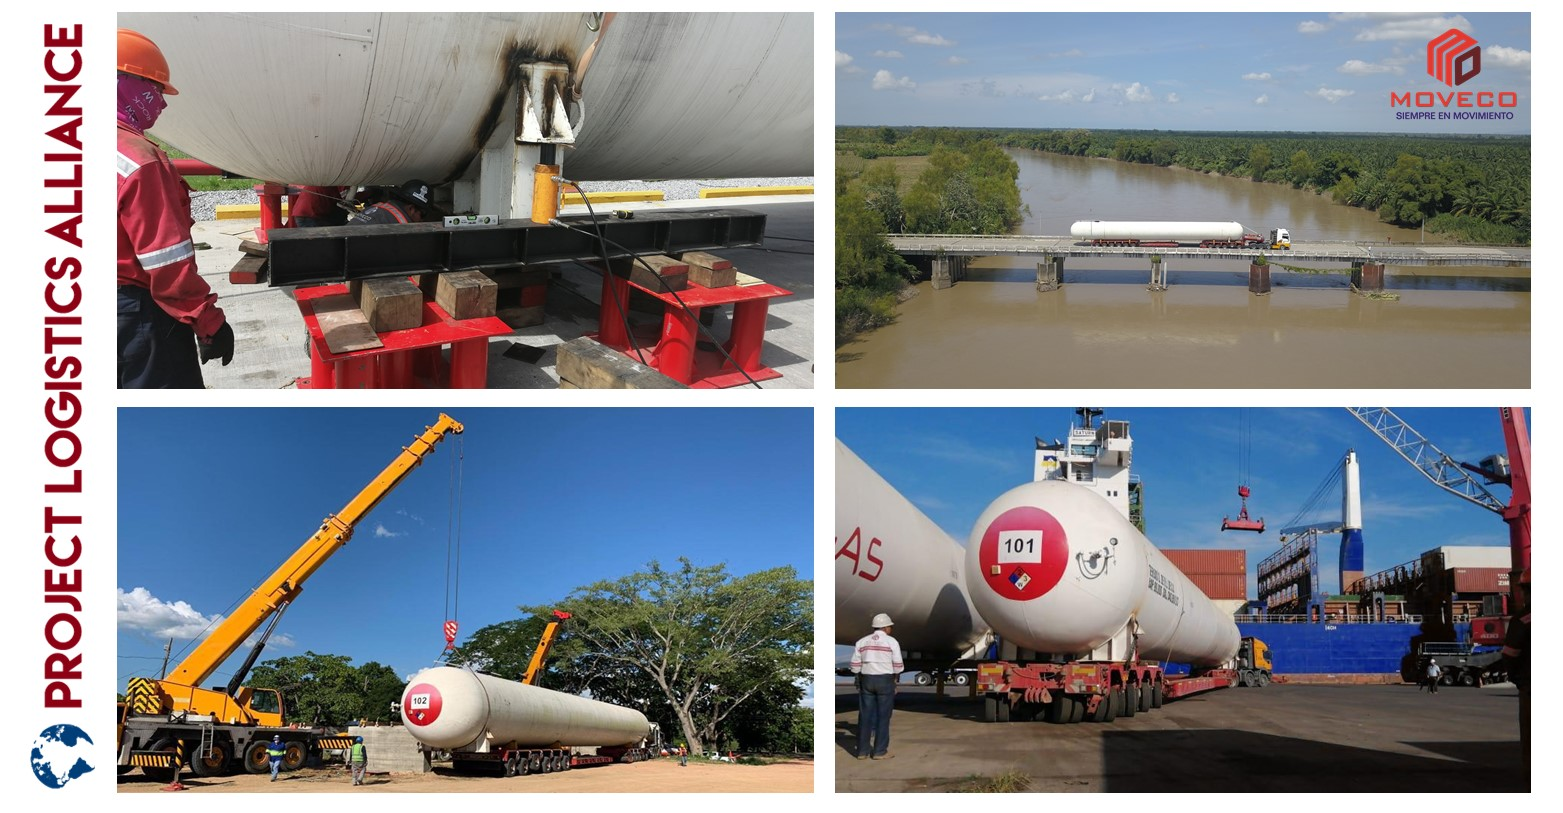 Moveco Delivers Storage Tanks From Guatemala To Honduras